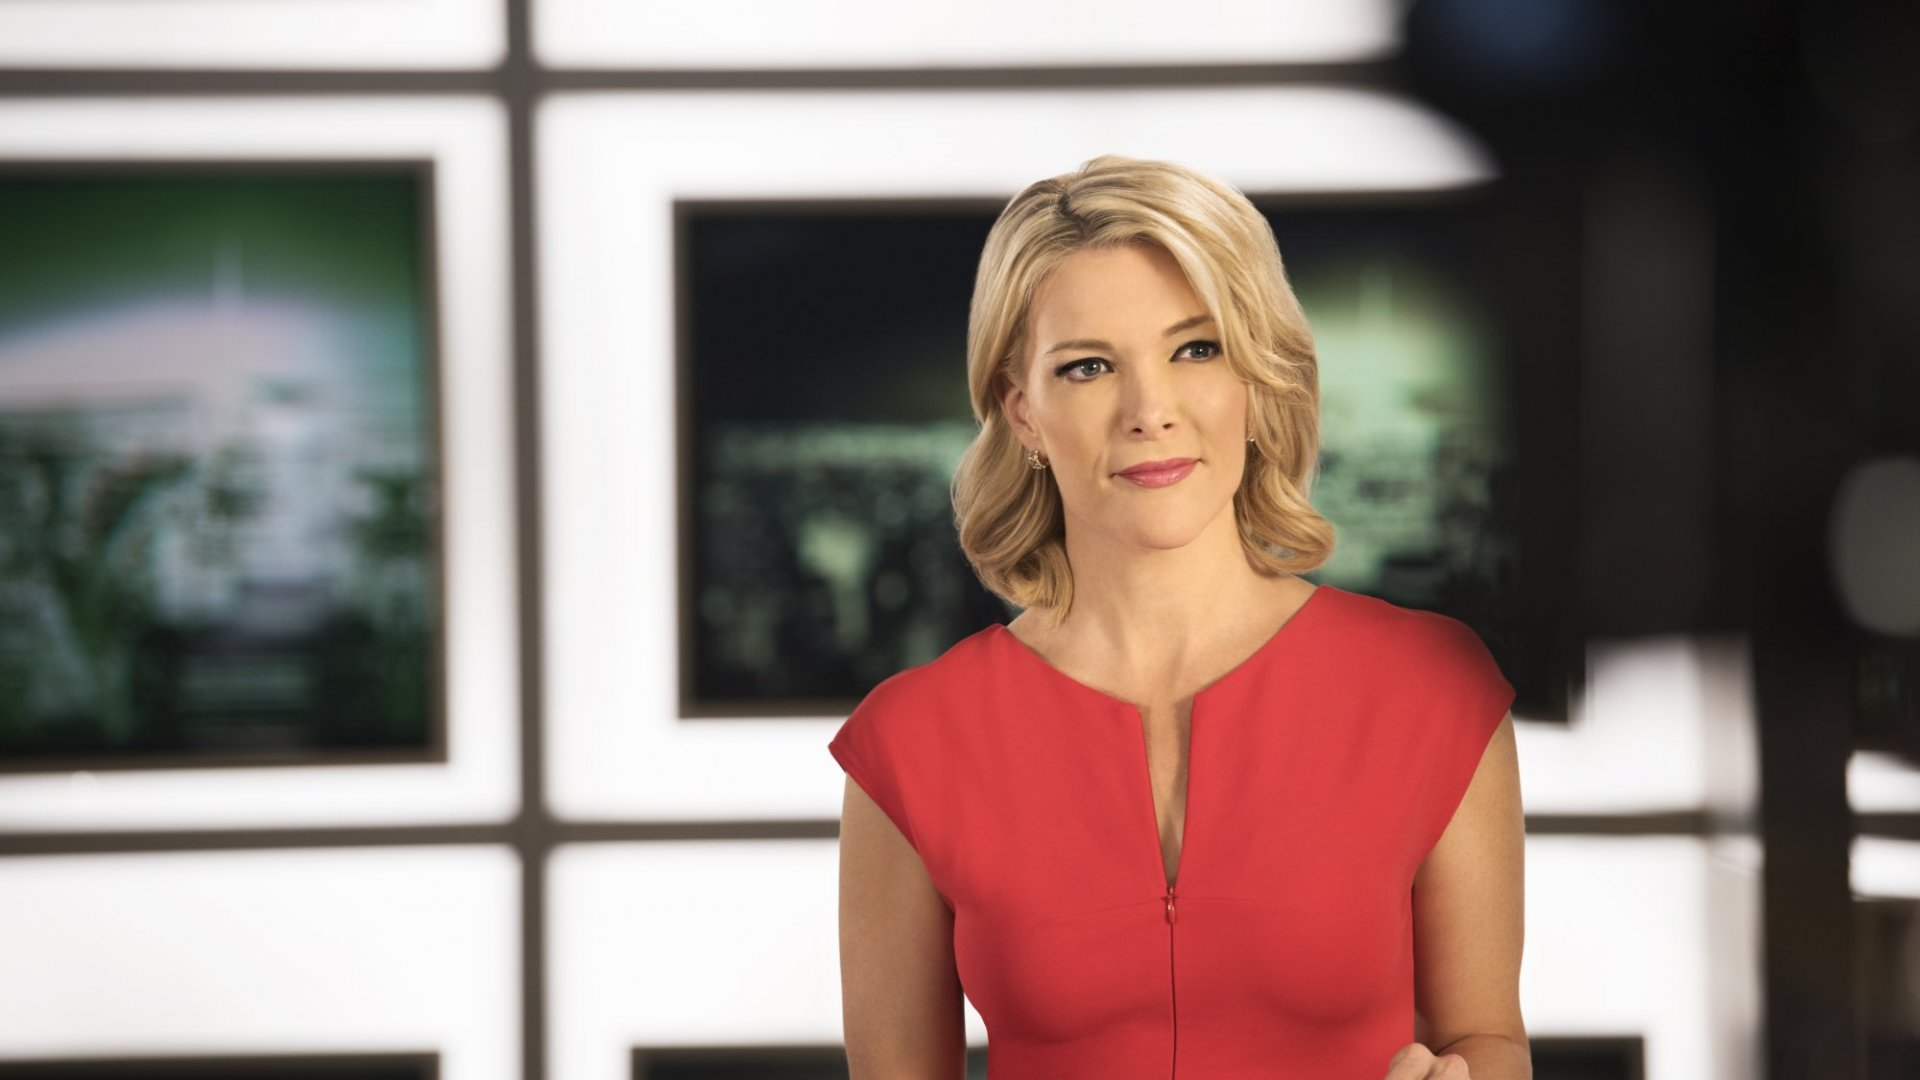 Here's the $69 Million Reason Megyn Kelly Doesn't Care That She Got Fired